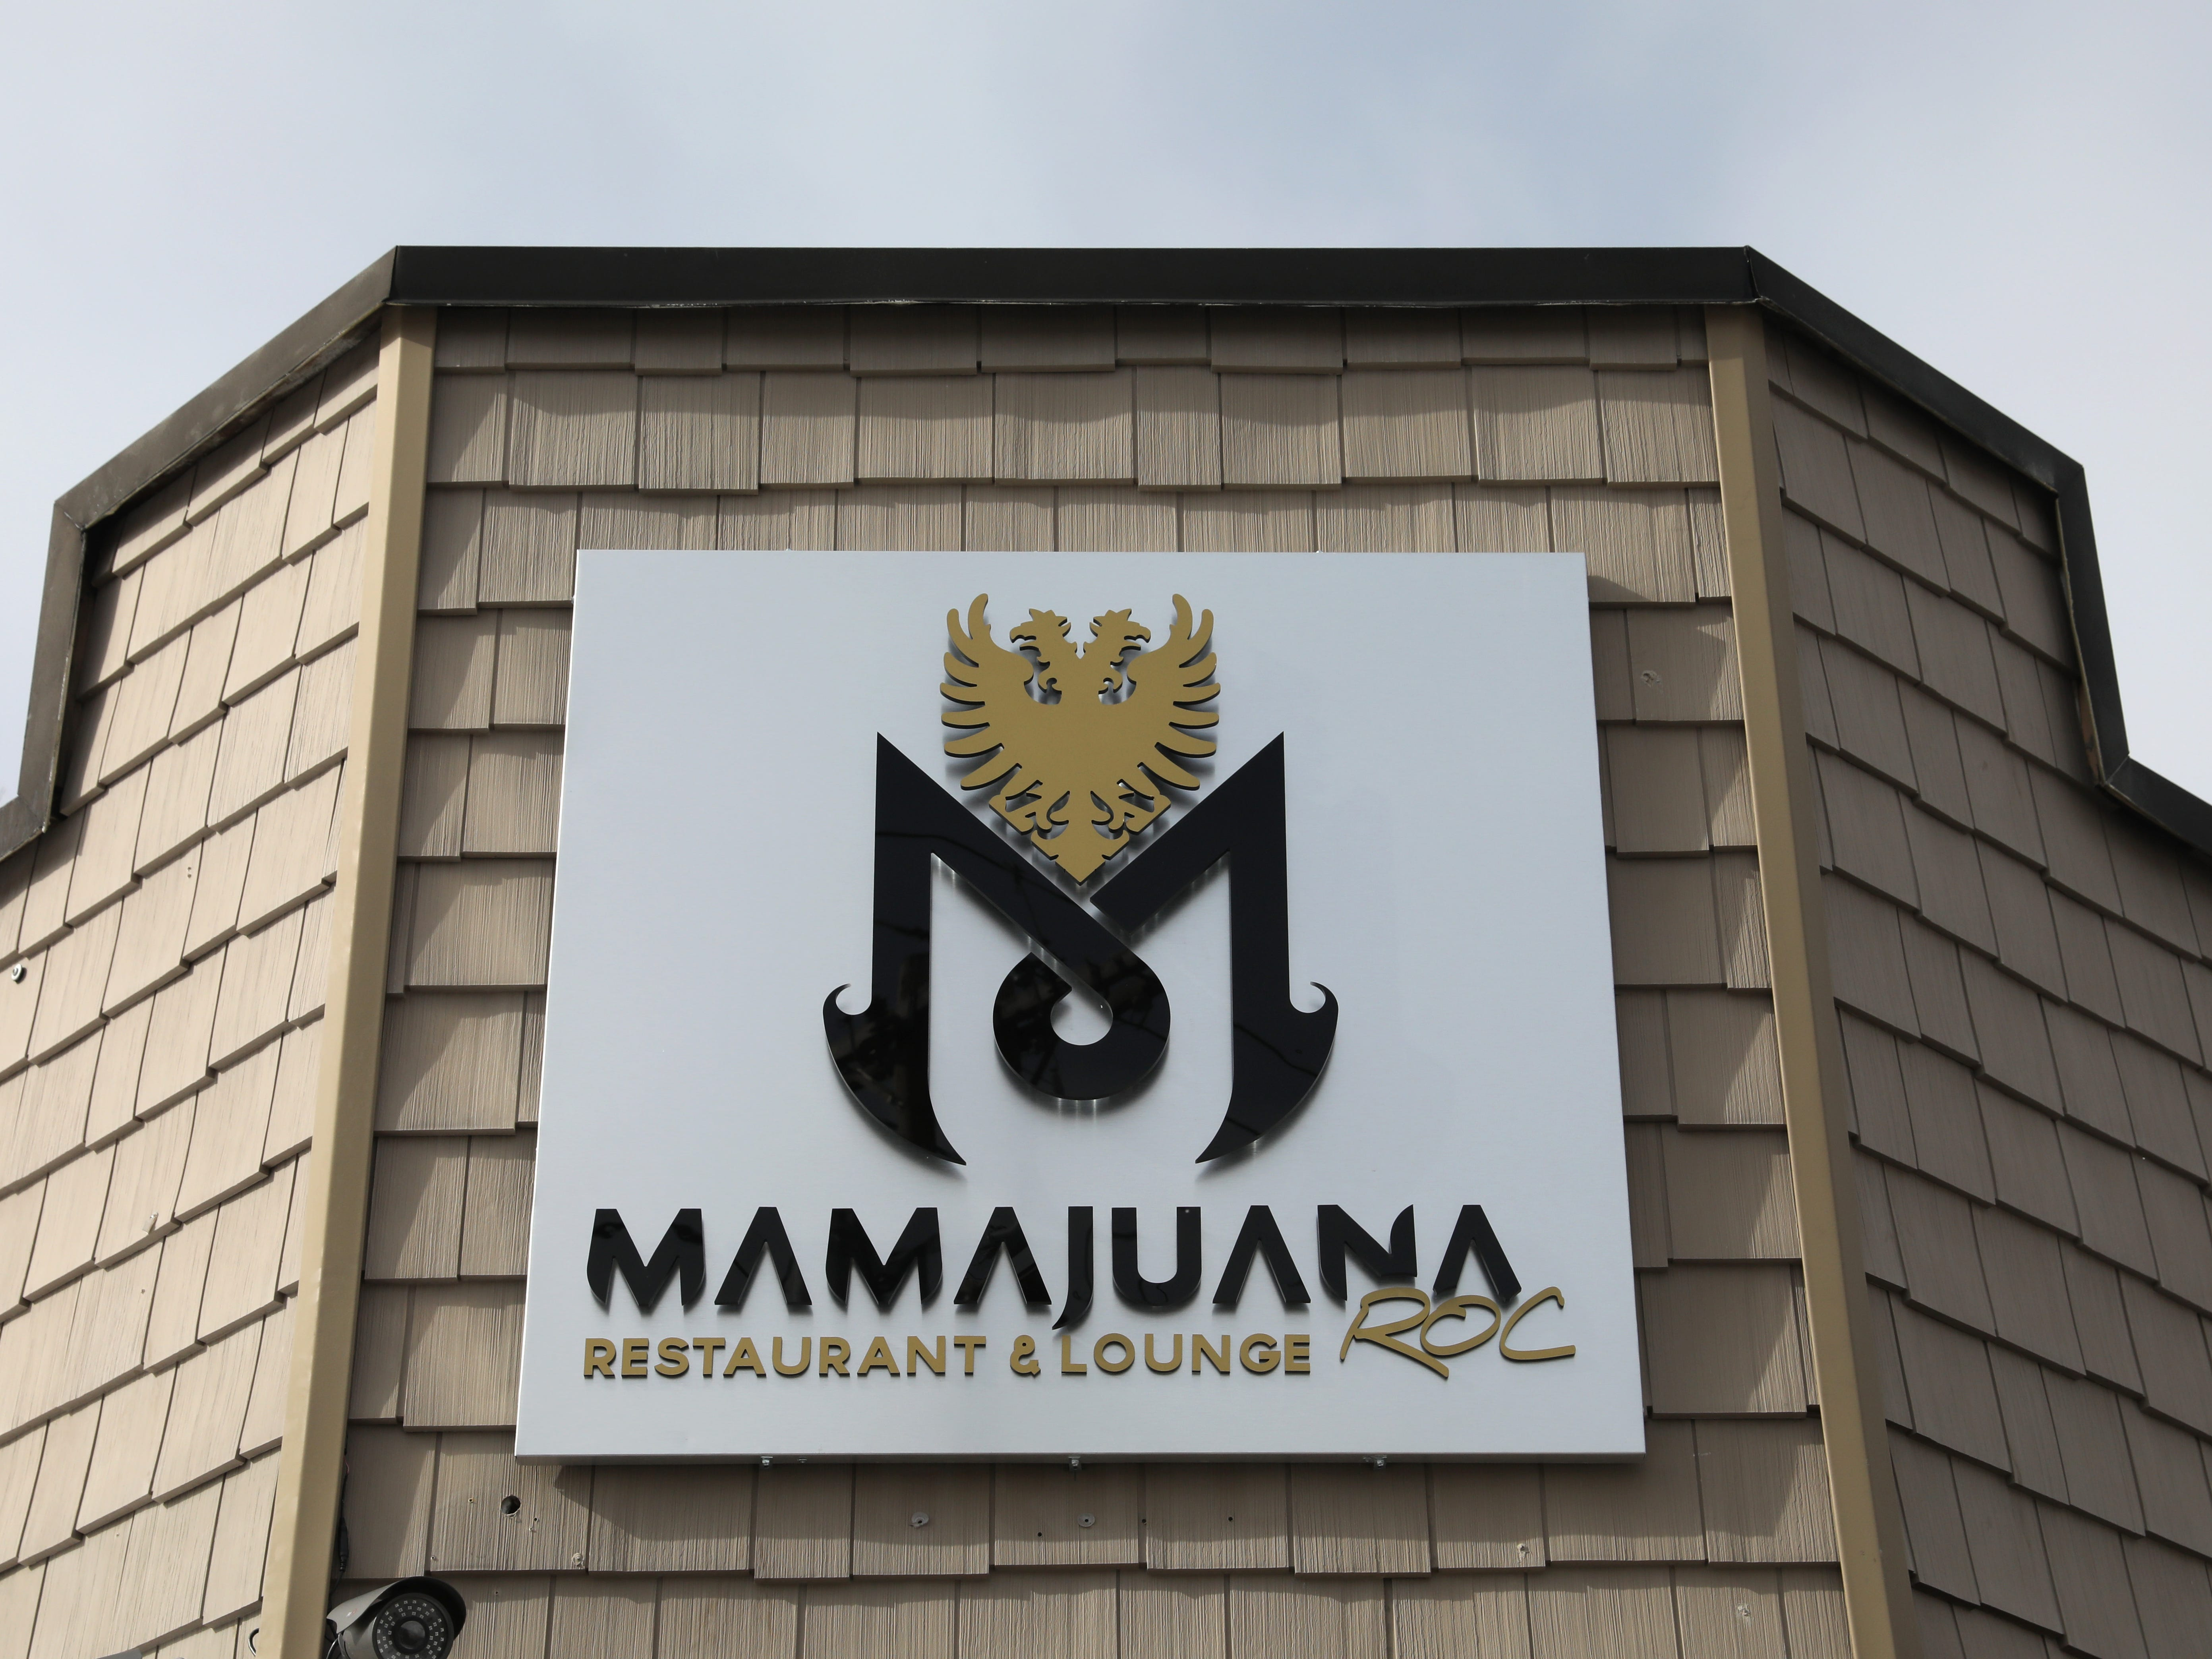 MamaJuana Restaurant and Lounge is at 2260 Clifford Ave. in Rochester.